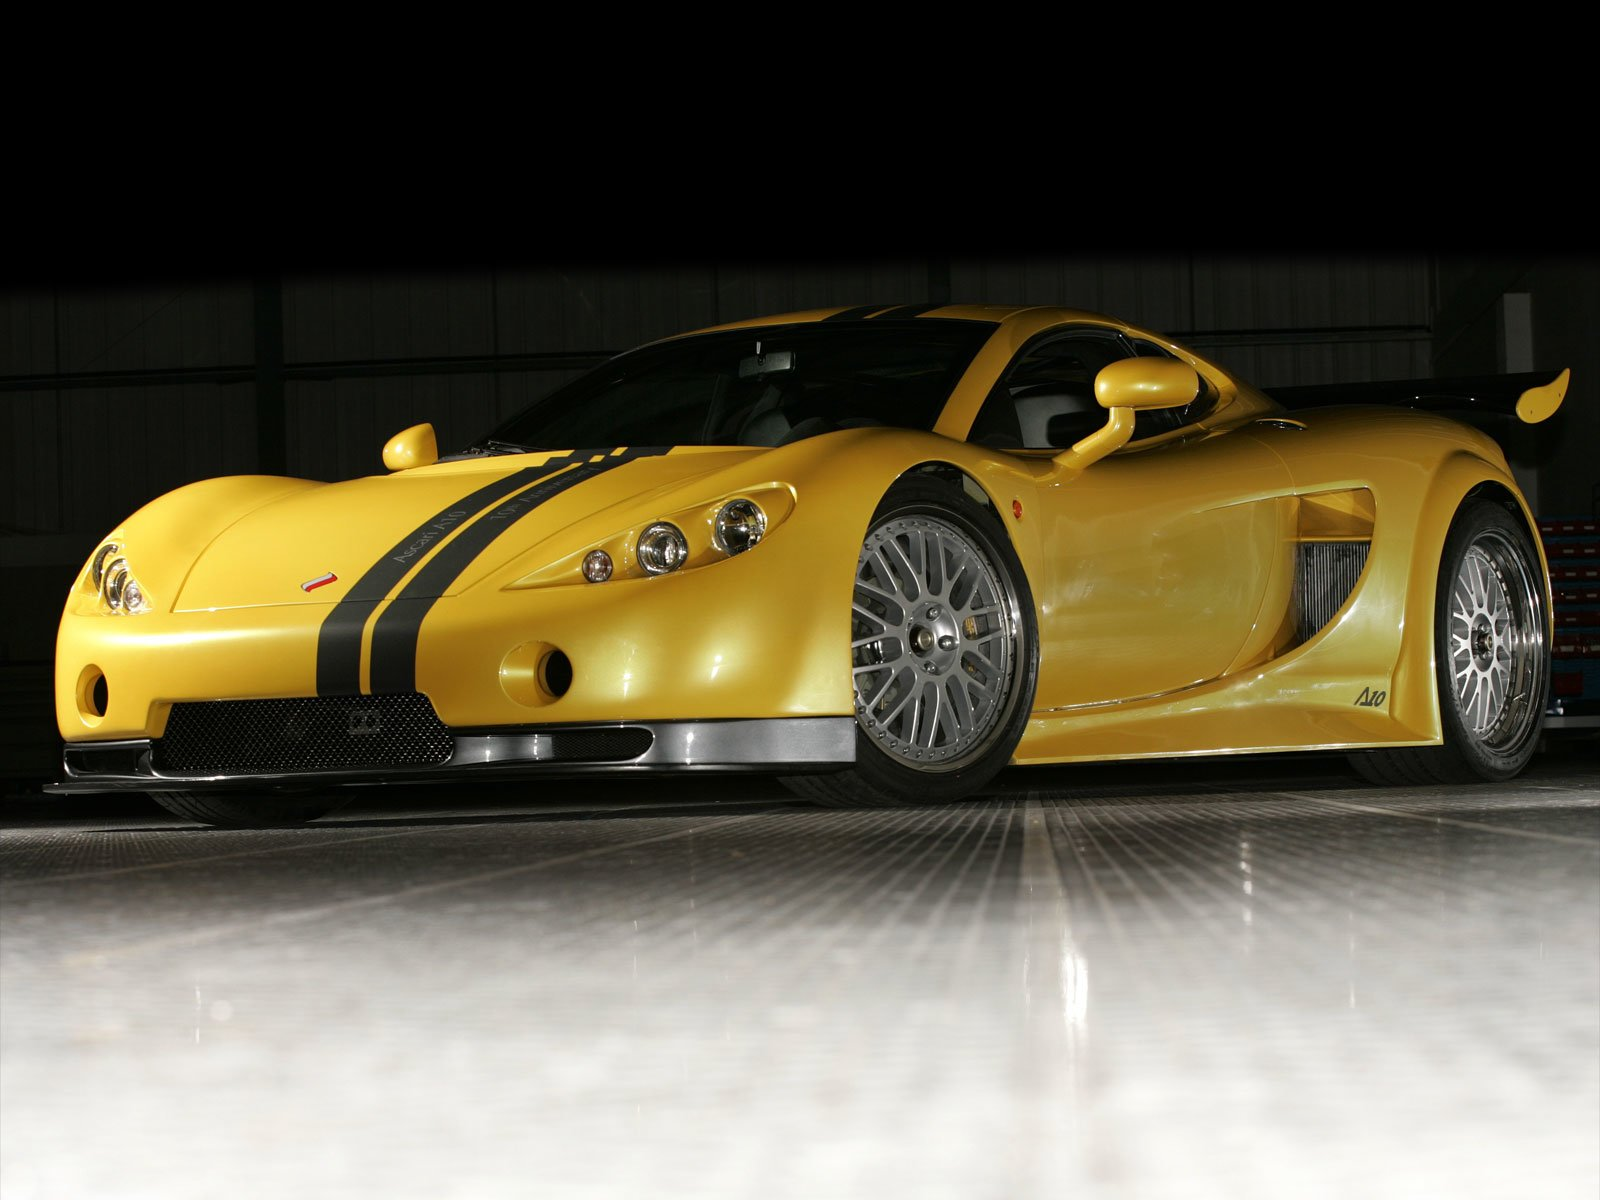 Latest Carz Wallpapers Ascari A10 Free Download